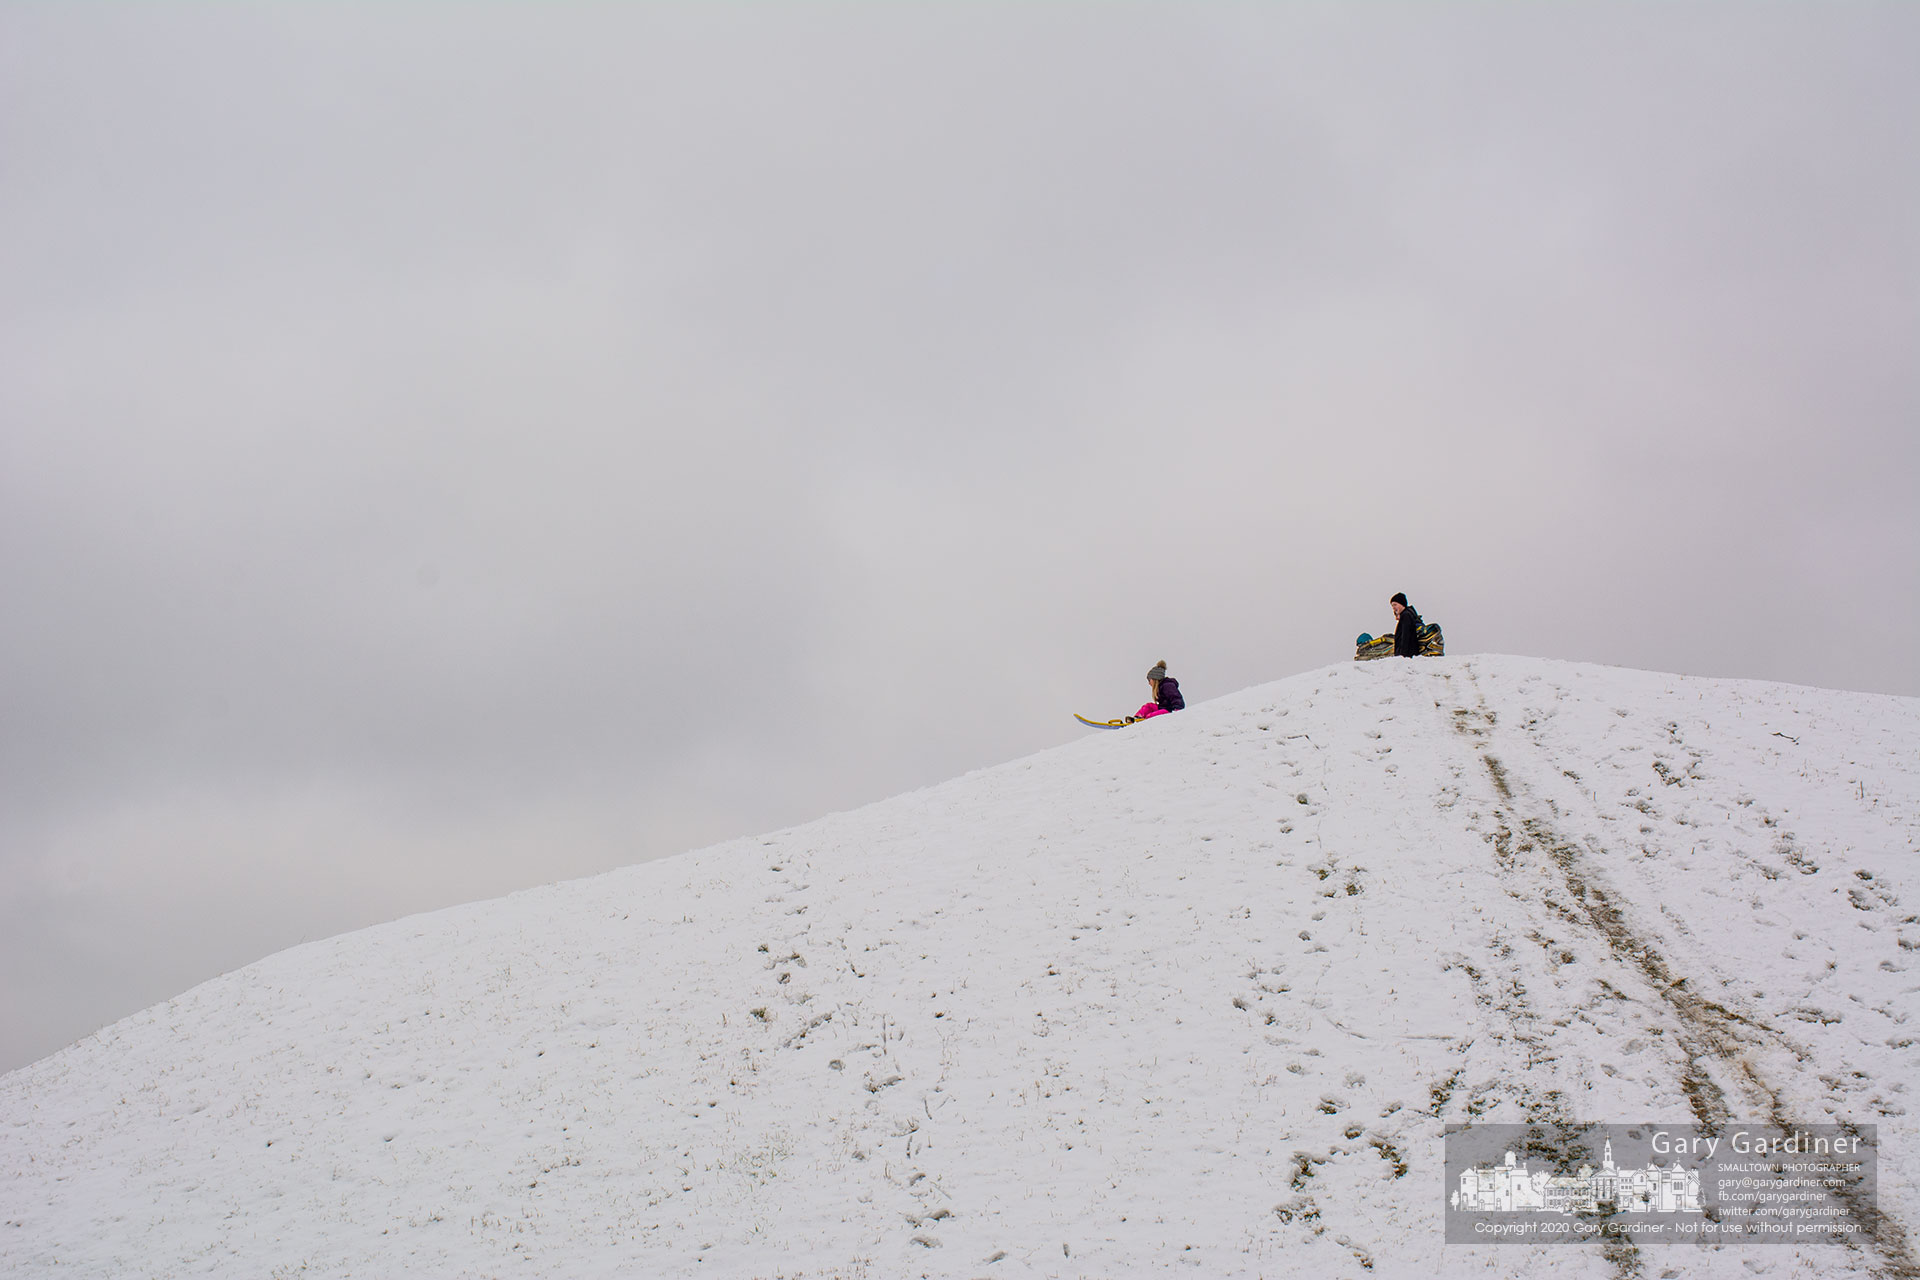 A young girl begins another run down the Parks and Rec's sledding hill on Park Meadow Drive after two days of snow showers left enough snow in the hill for a fun time. My Final Photo for Feb. 13, 2020.